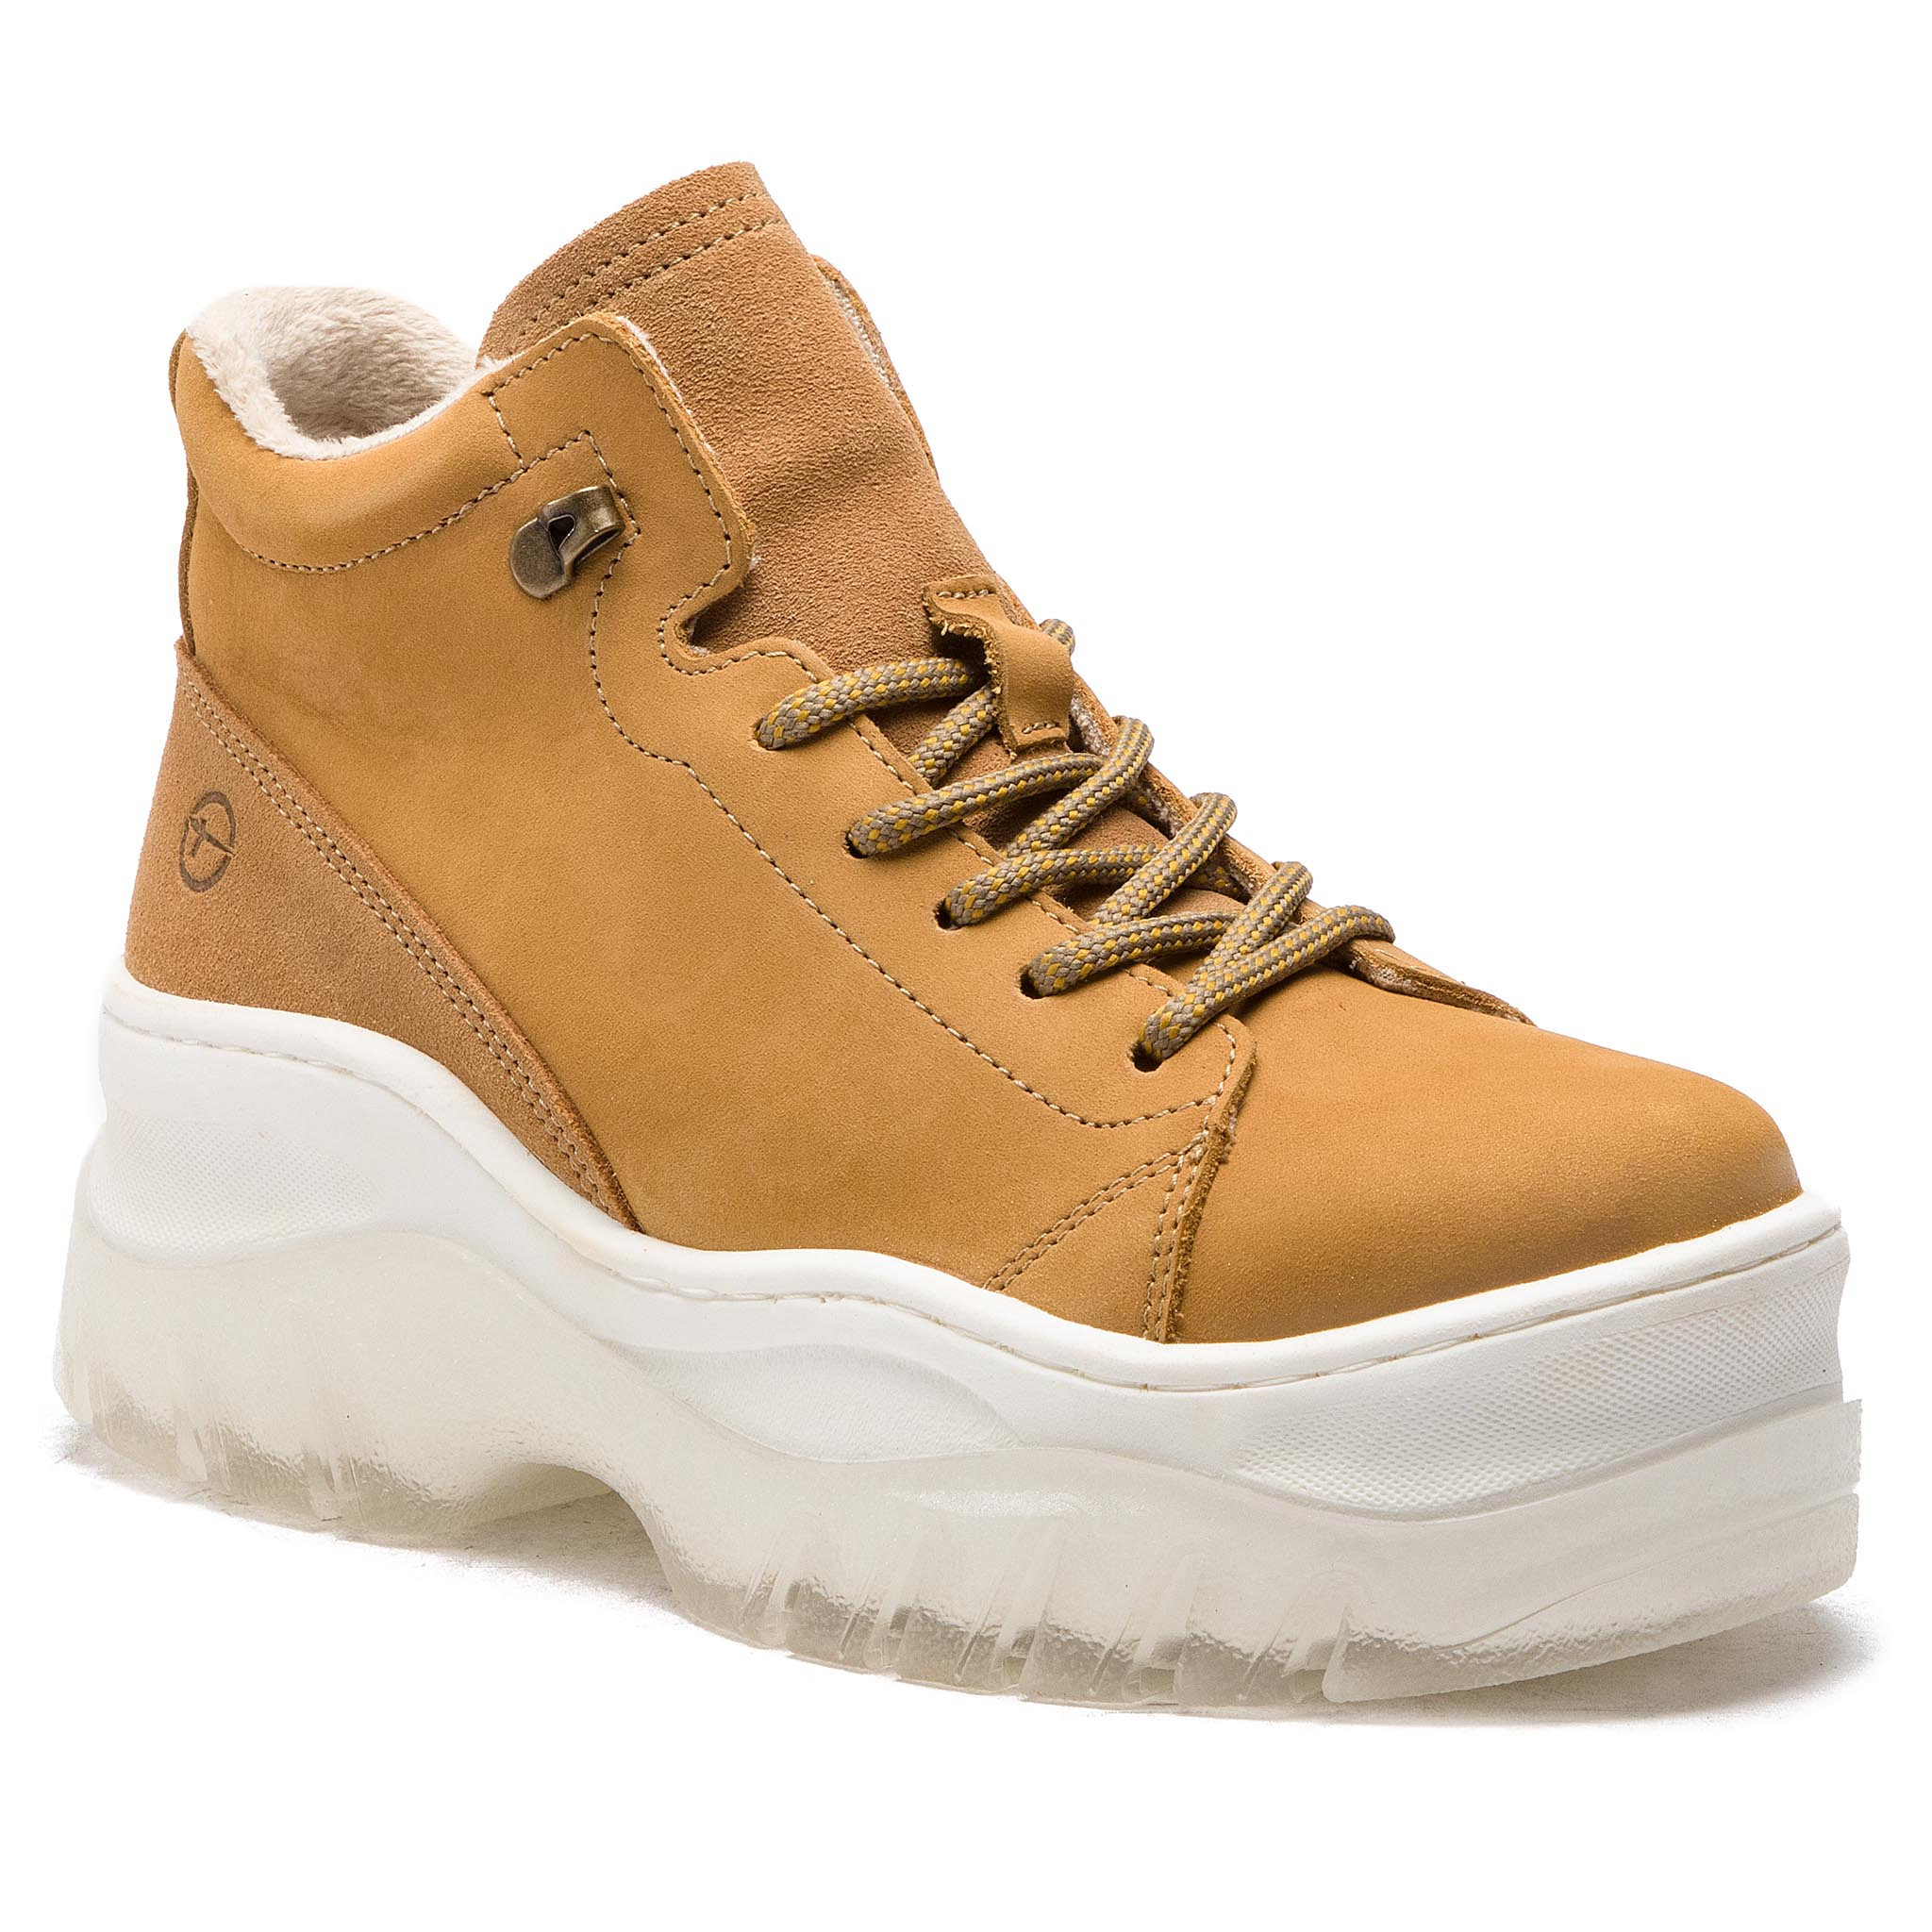 Sneakers TAMARIS - 1-25248-31 Corn 610